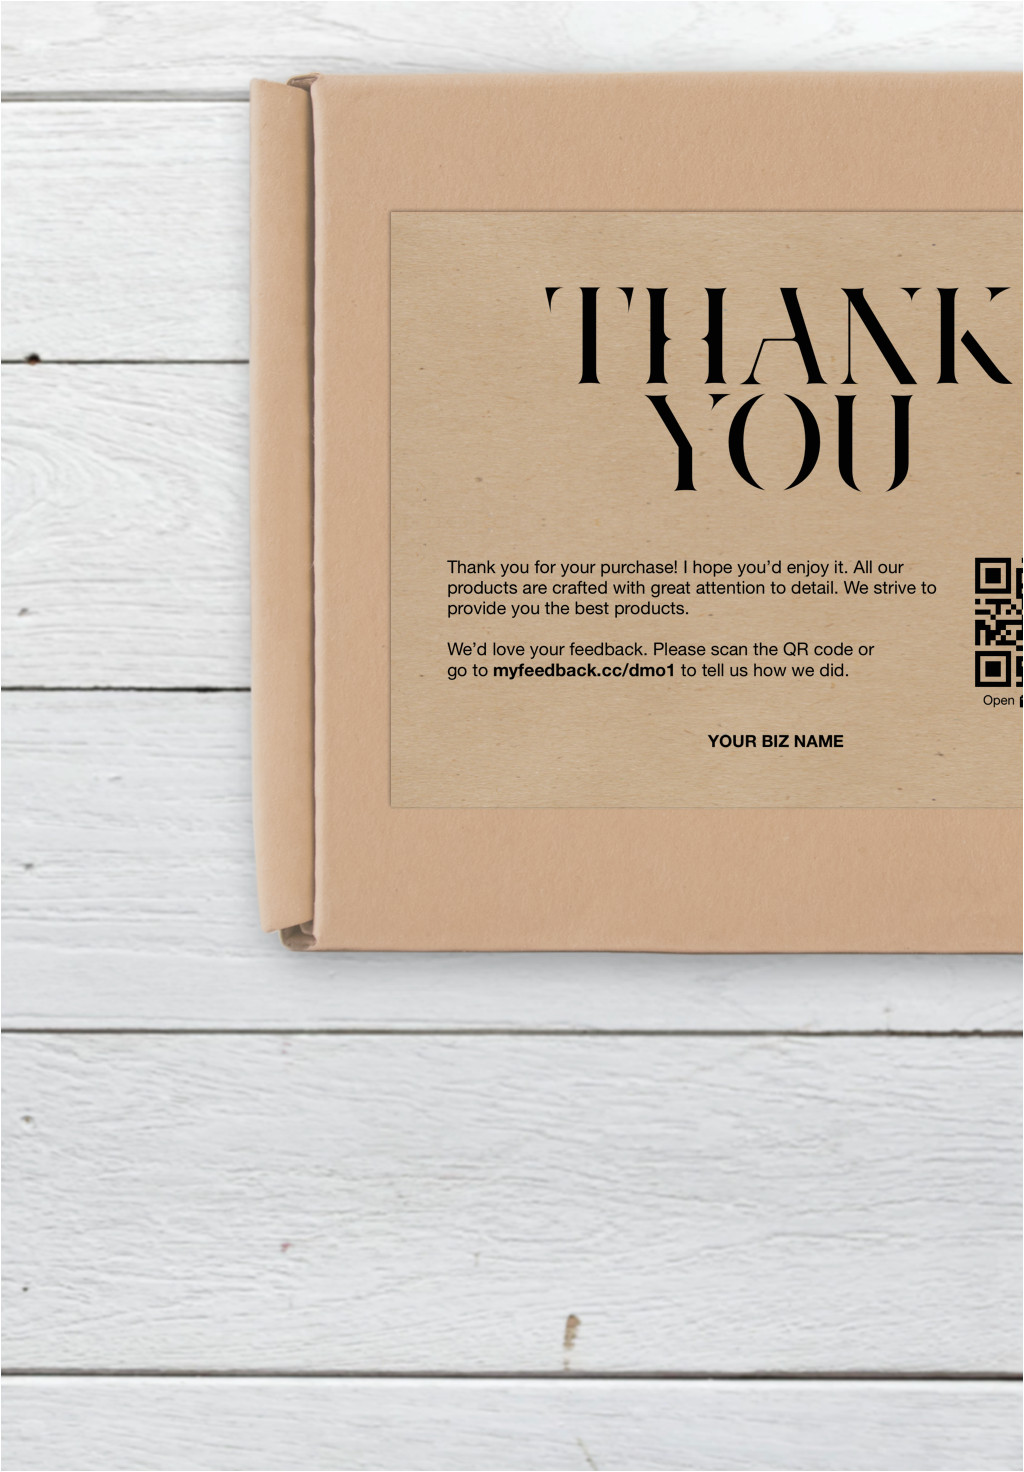 Thank You On A Card Business Thank You Card Thank You for Your Purchase